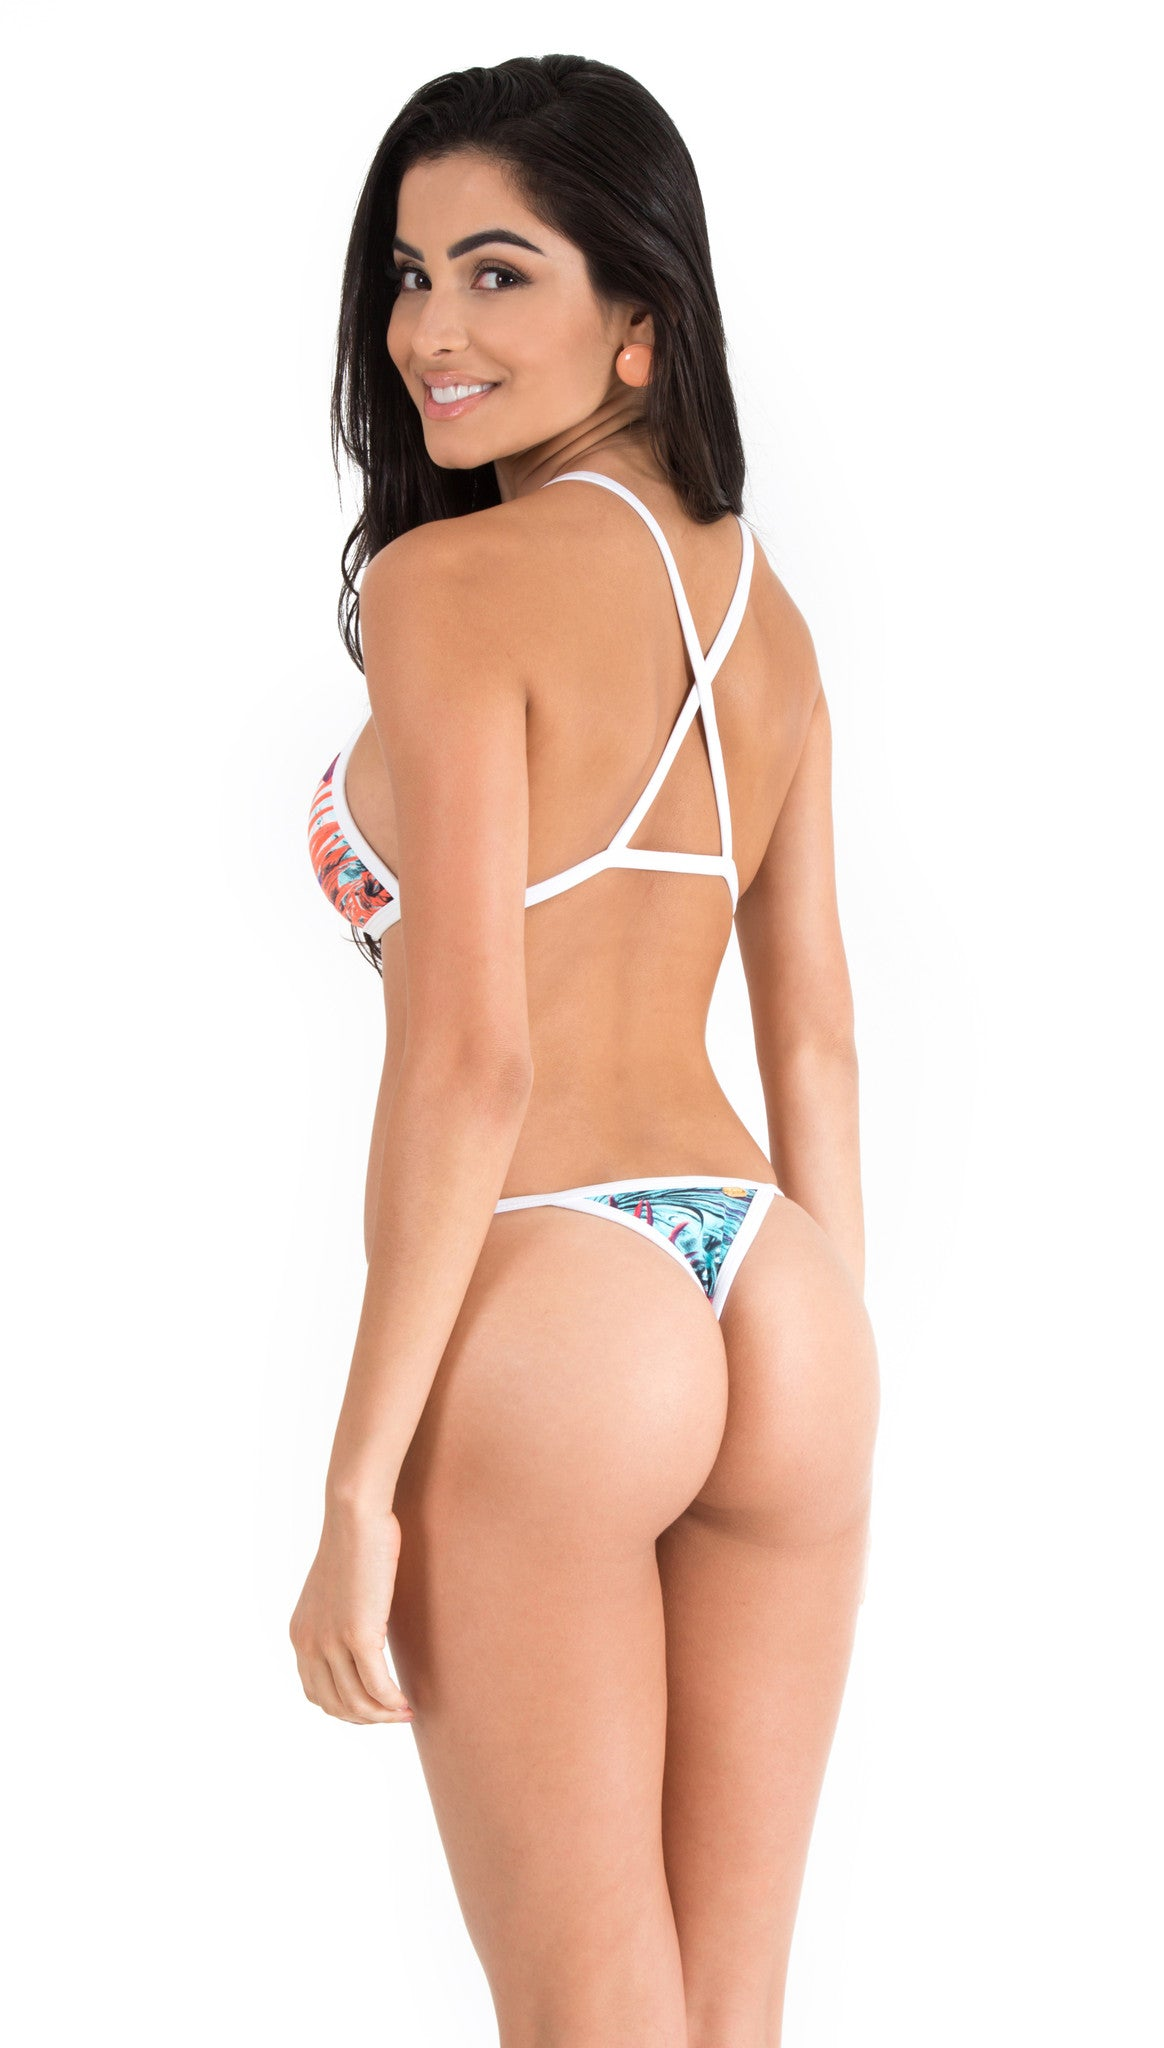 Rio Swim Antigua Bottom - Rio Swim, Bikinis, Swimwear